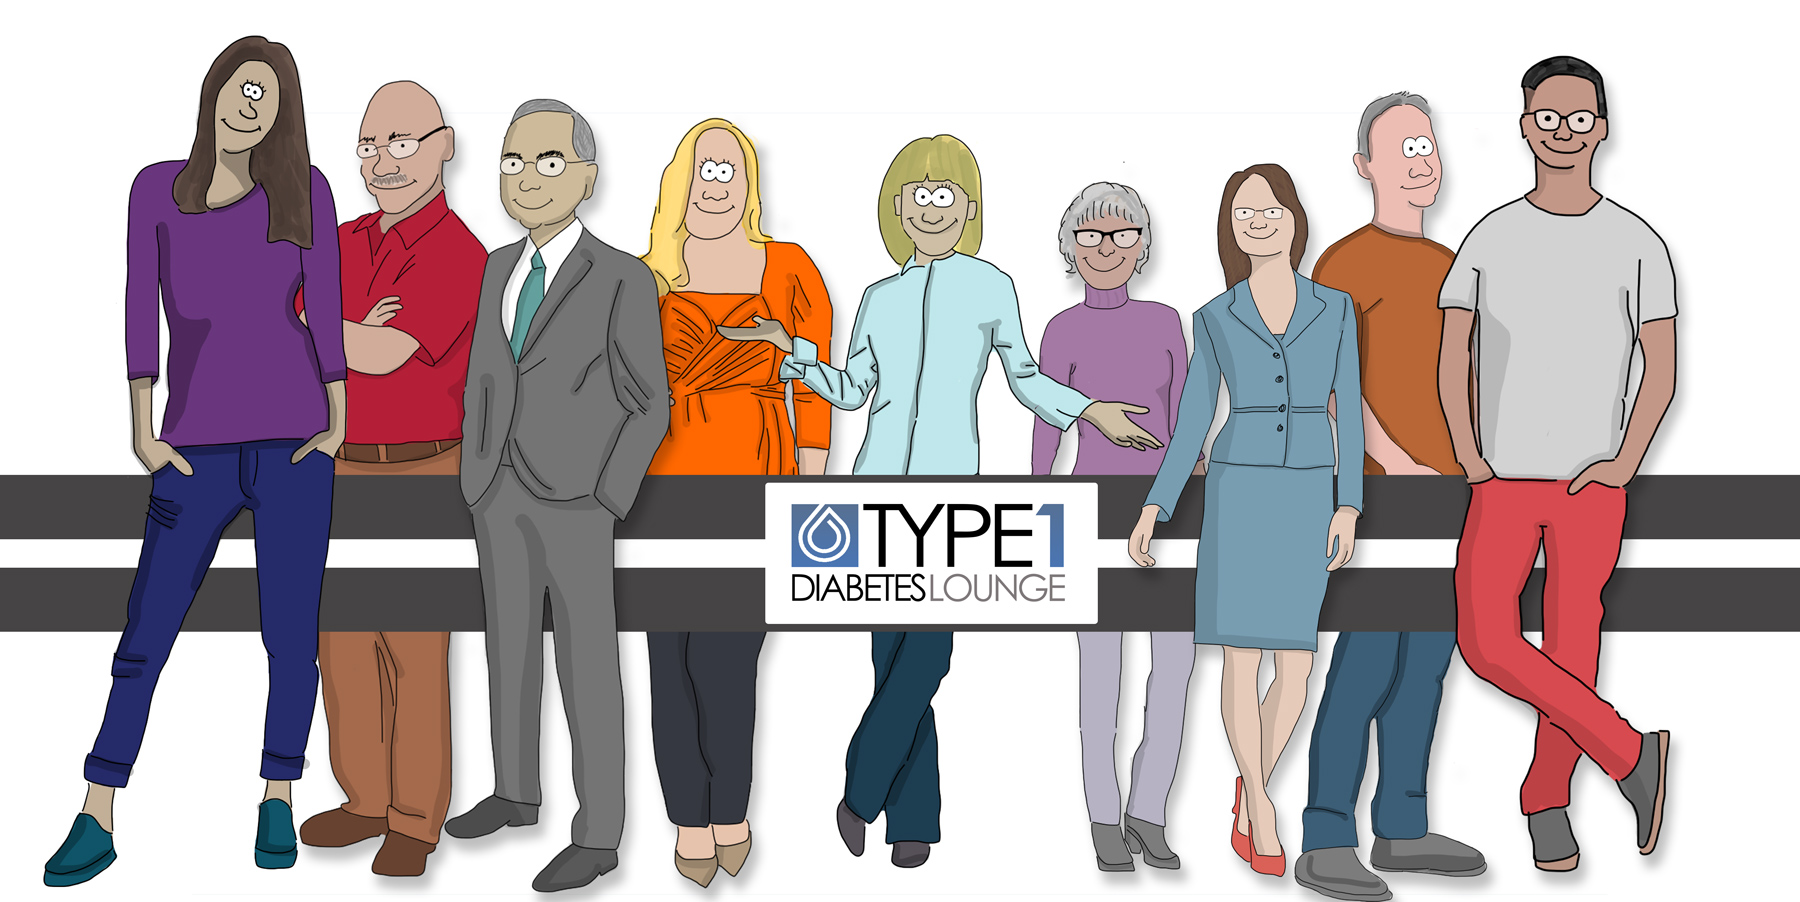 Welcome to Type 1 Diabetes Lounge - Image